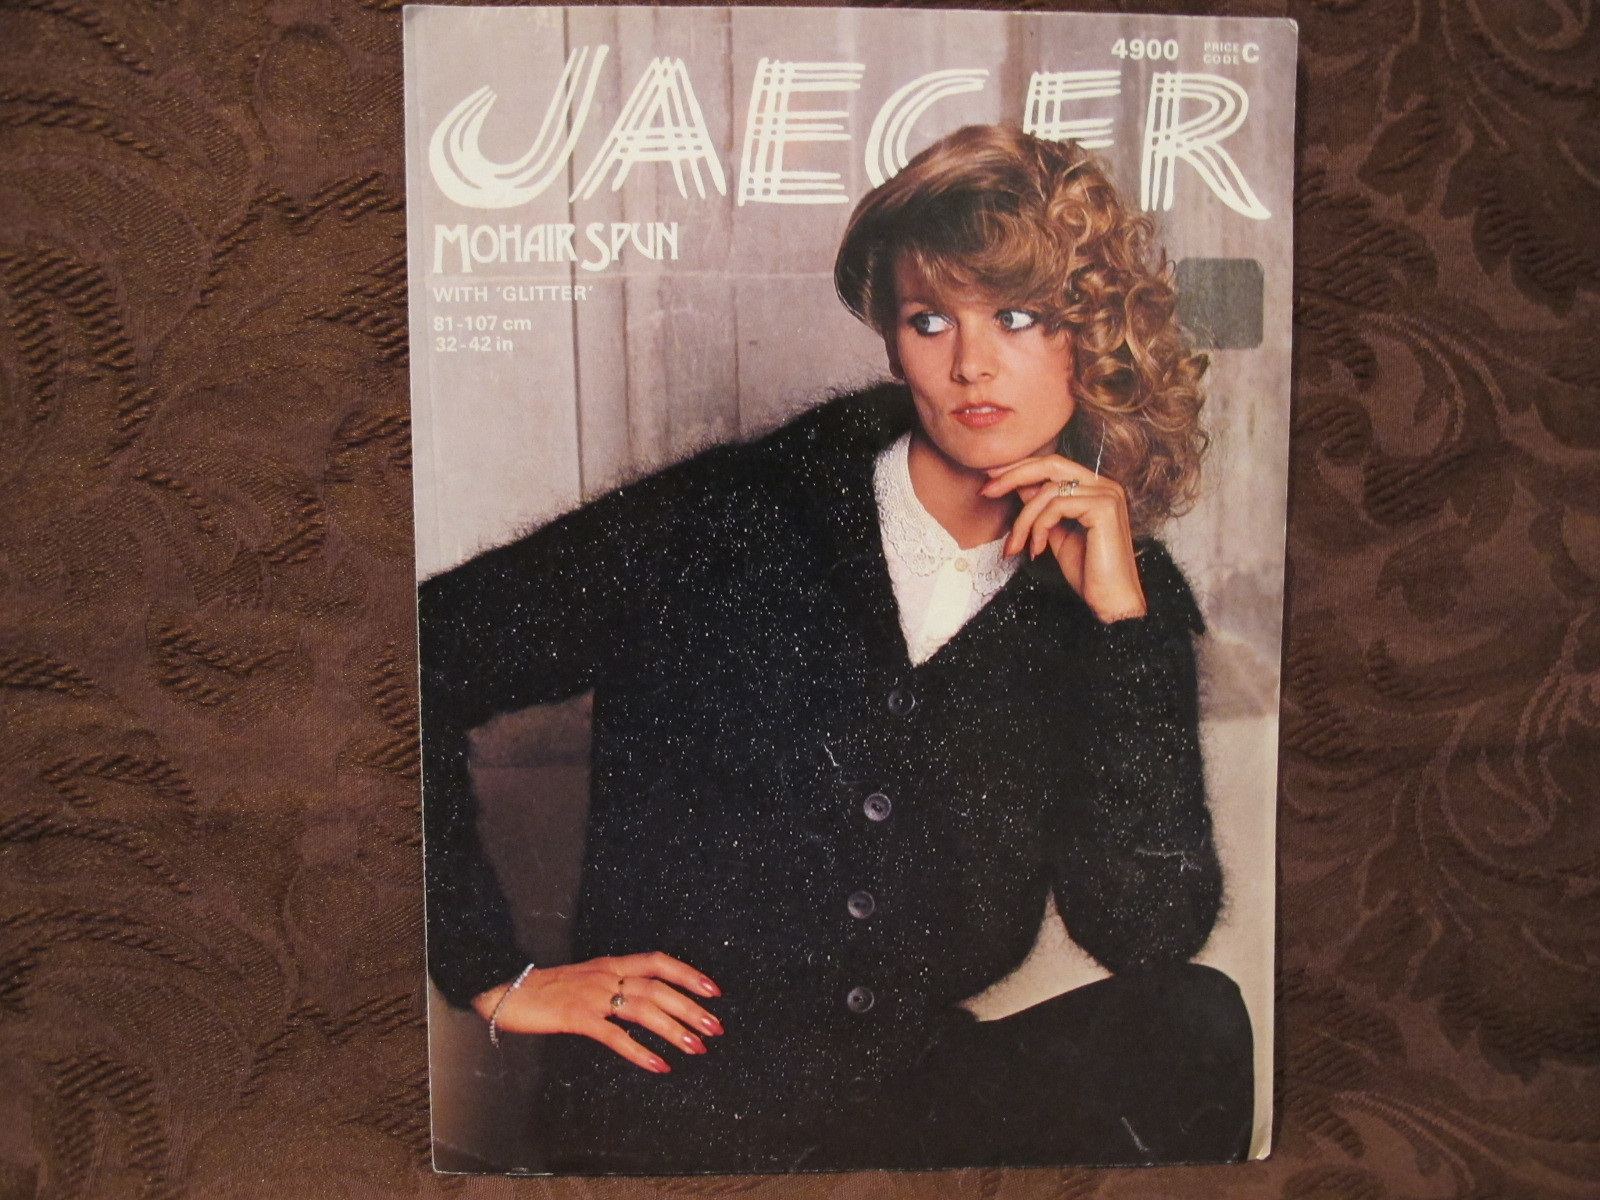 Vintage jaeger mohair spun knitting patterns and 13 similar items bankloansurffo Images